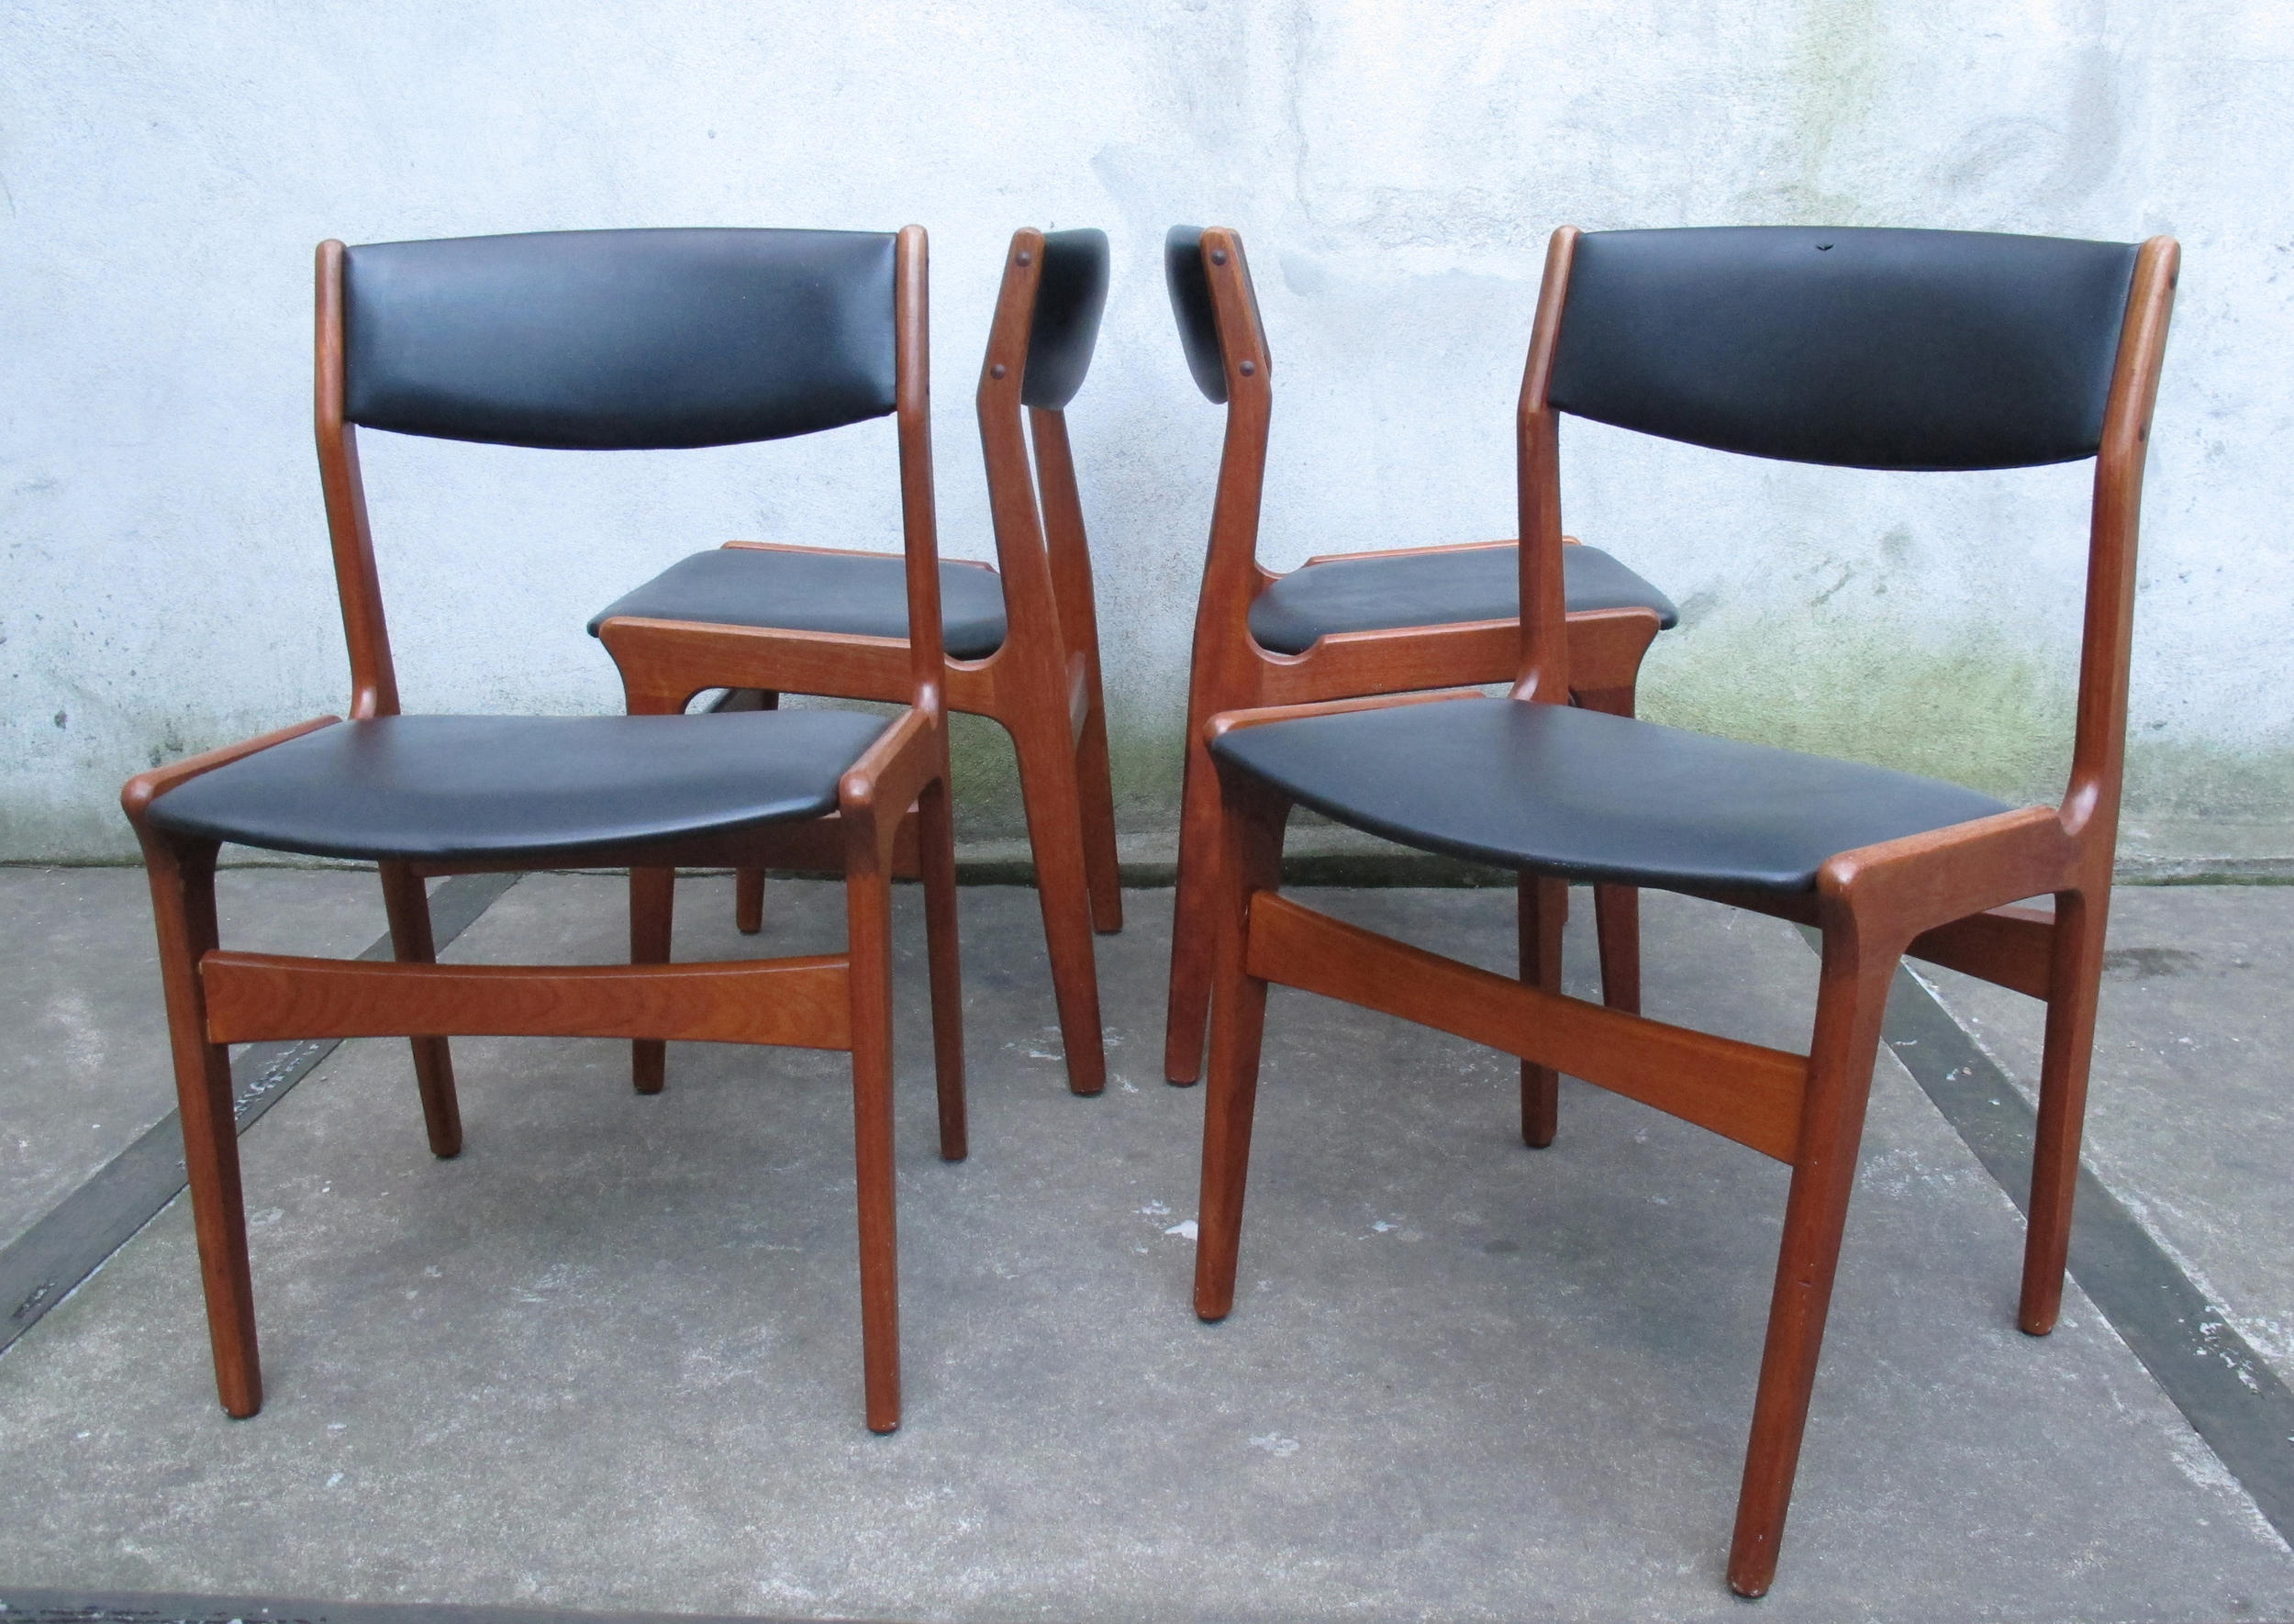 SET OF DANISH MODERN TEAK DINING CHAIRS BY DYRLUND